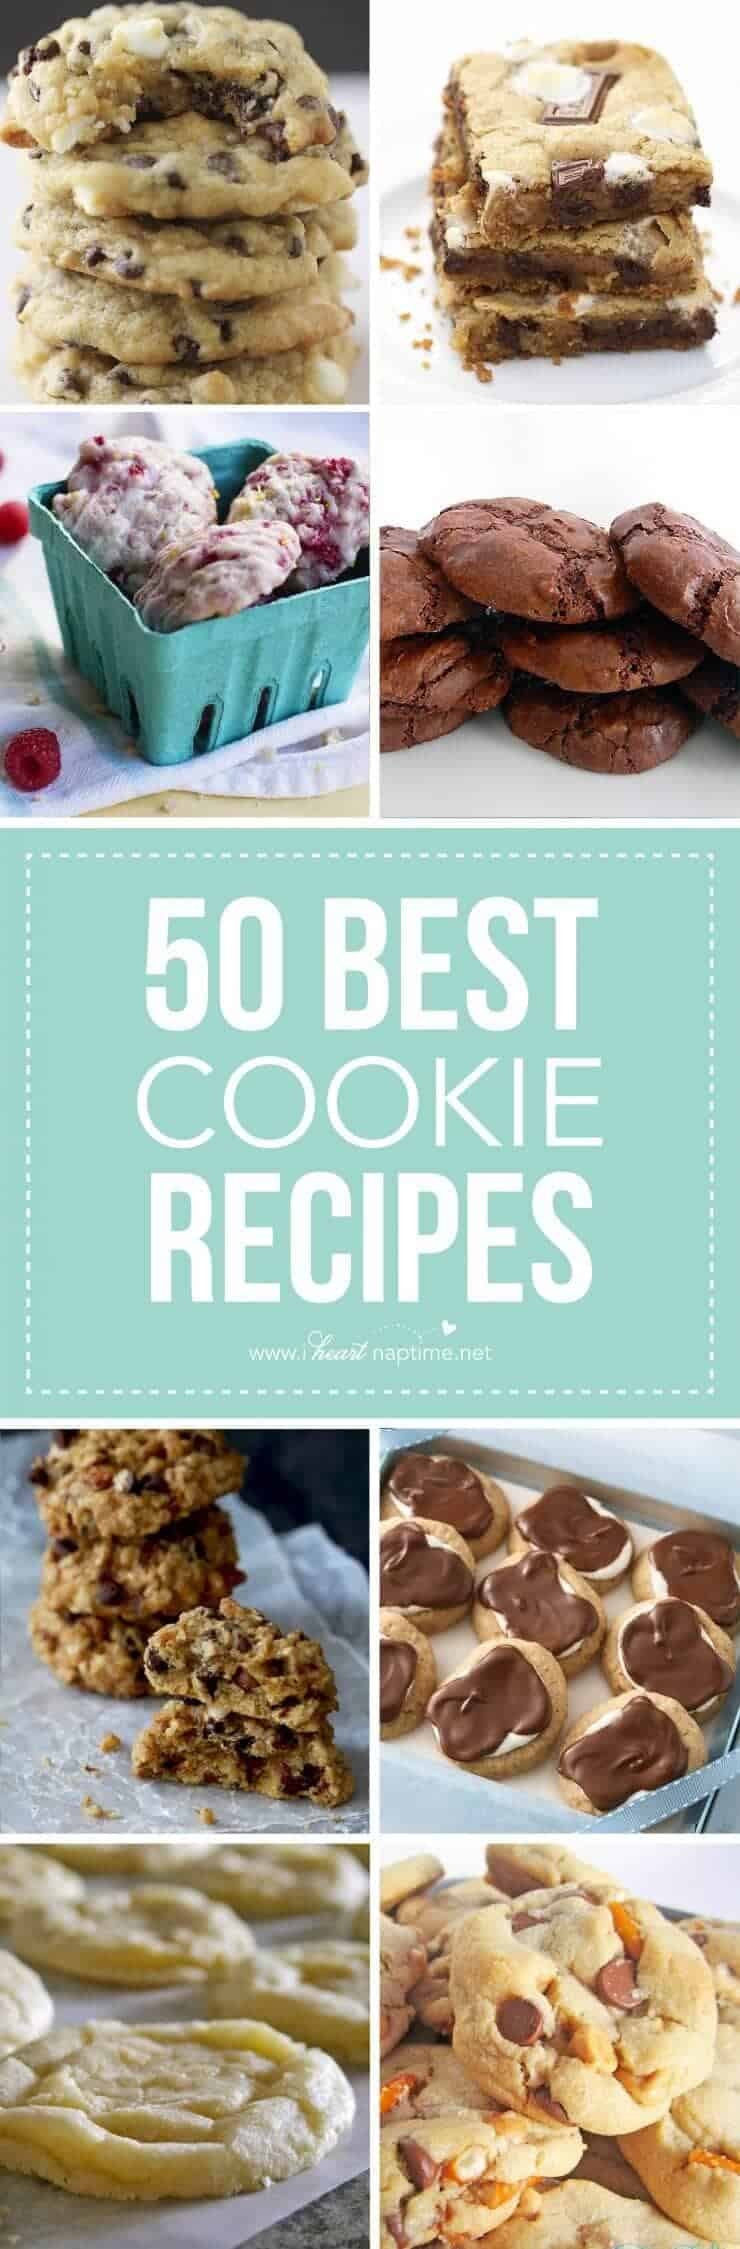 50 of the BEST cookie recipes -so many yummy new favorites to try!